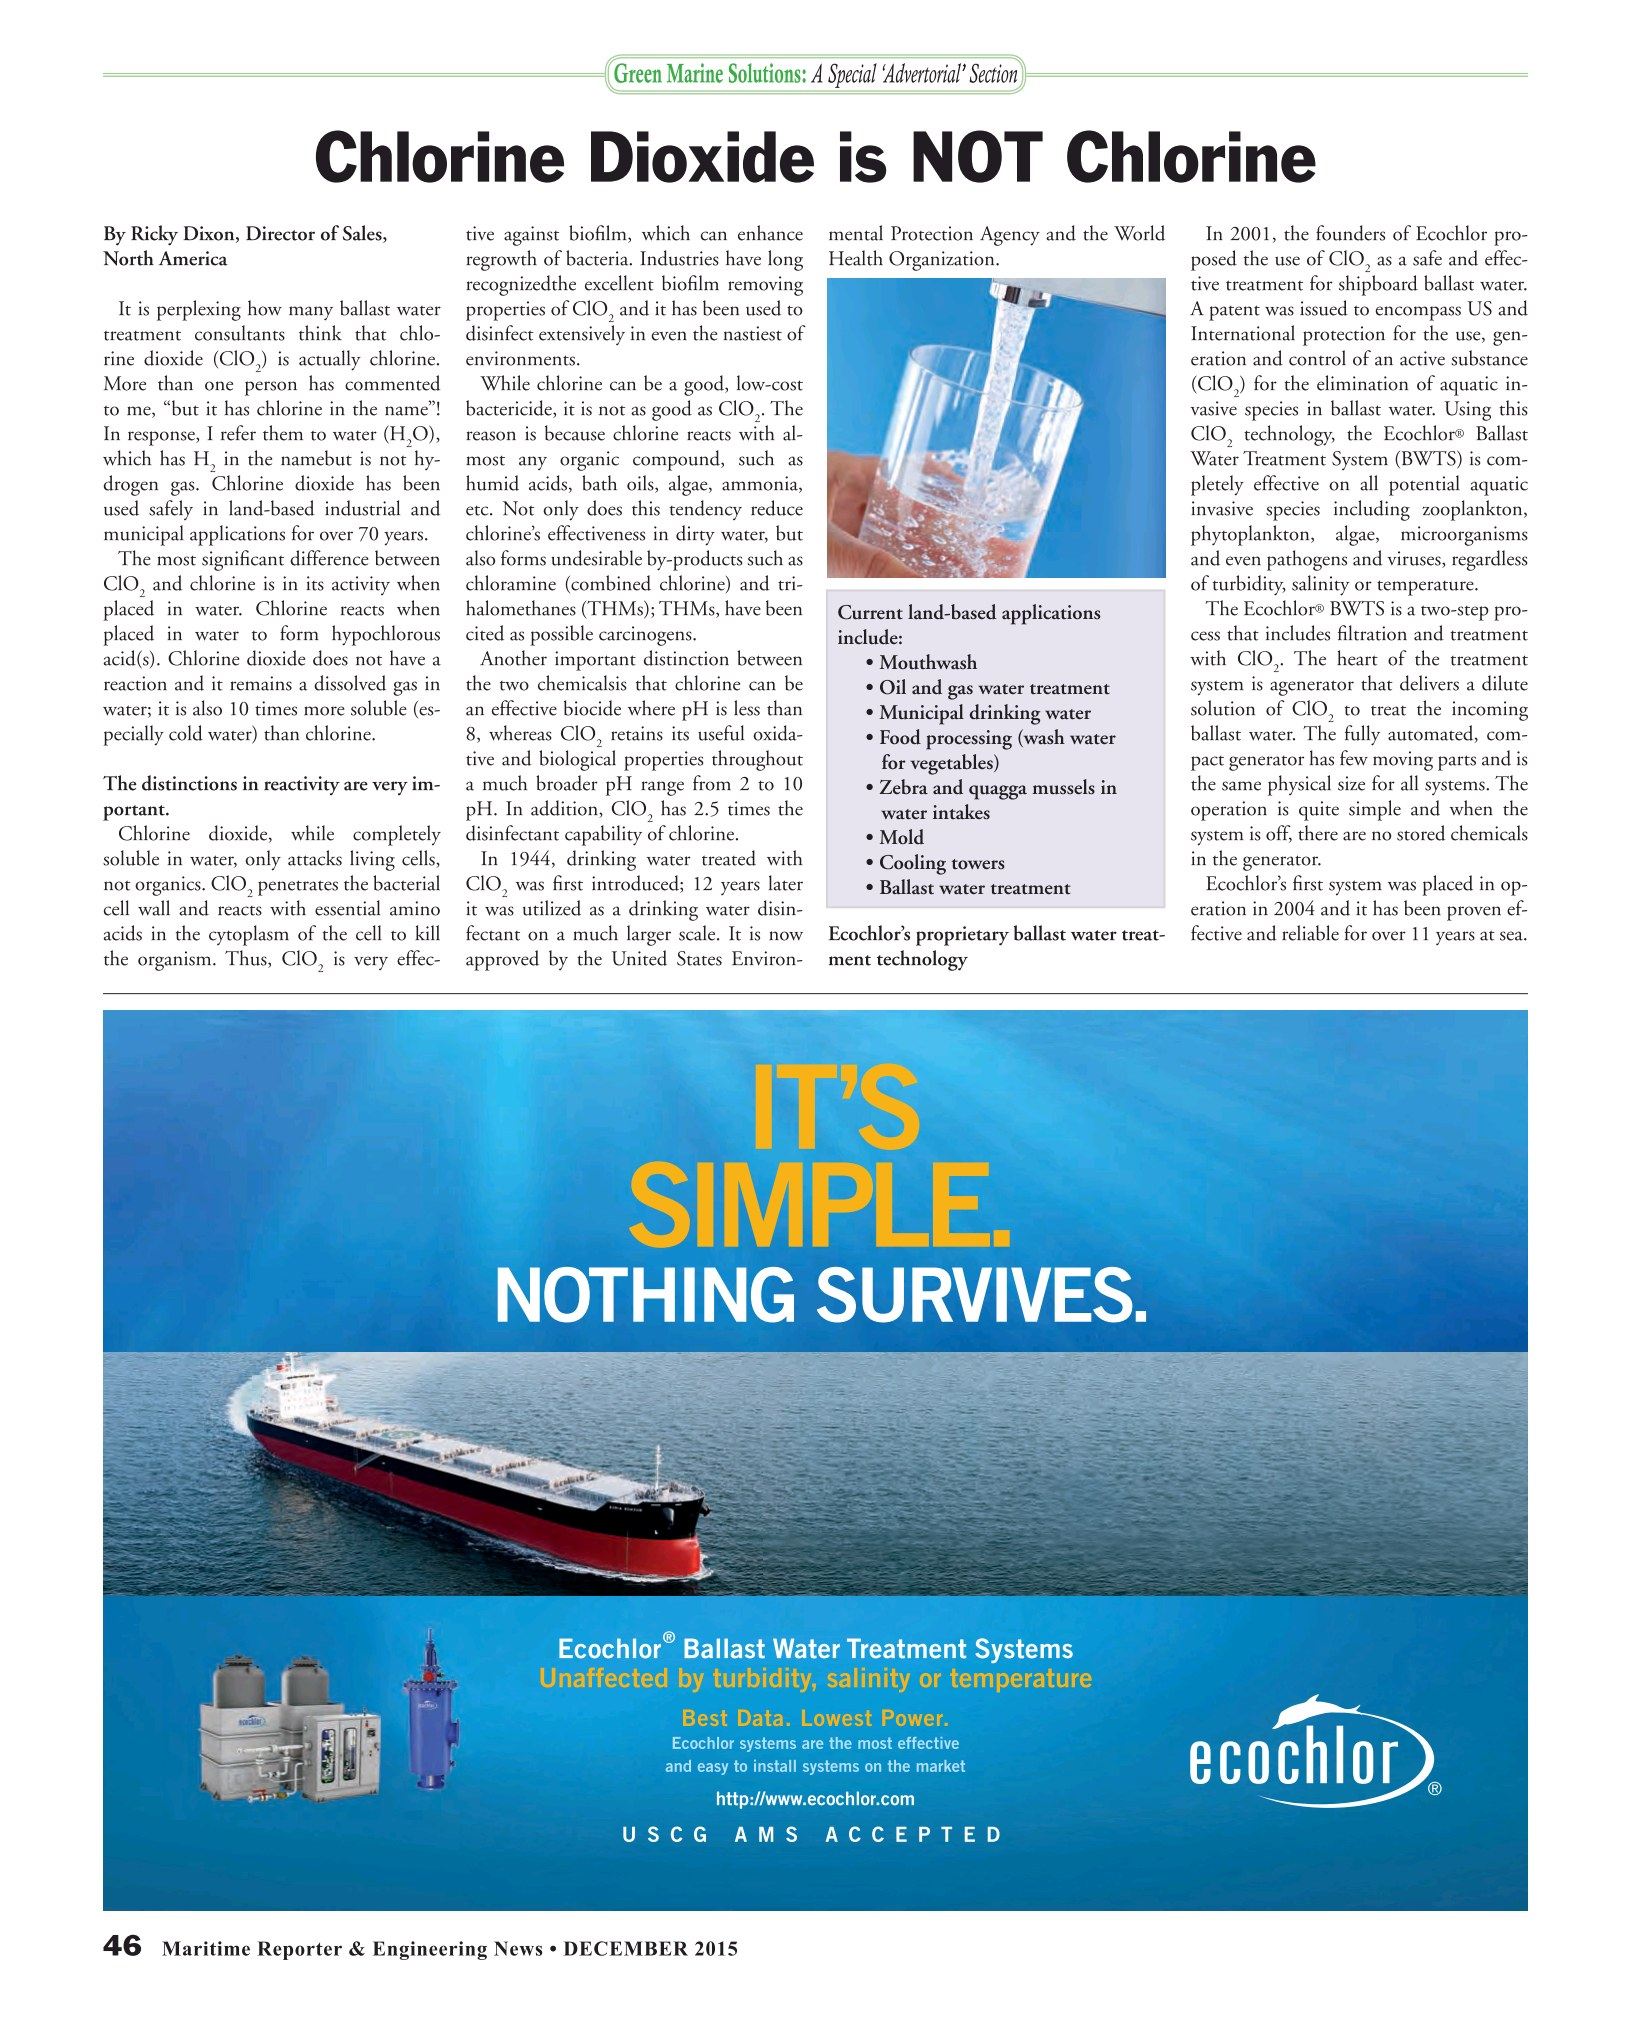 Maritime Reporter and Engineering news, December 2015 Issue